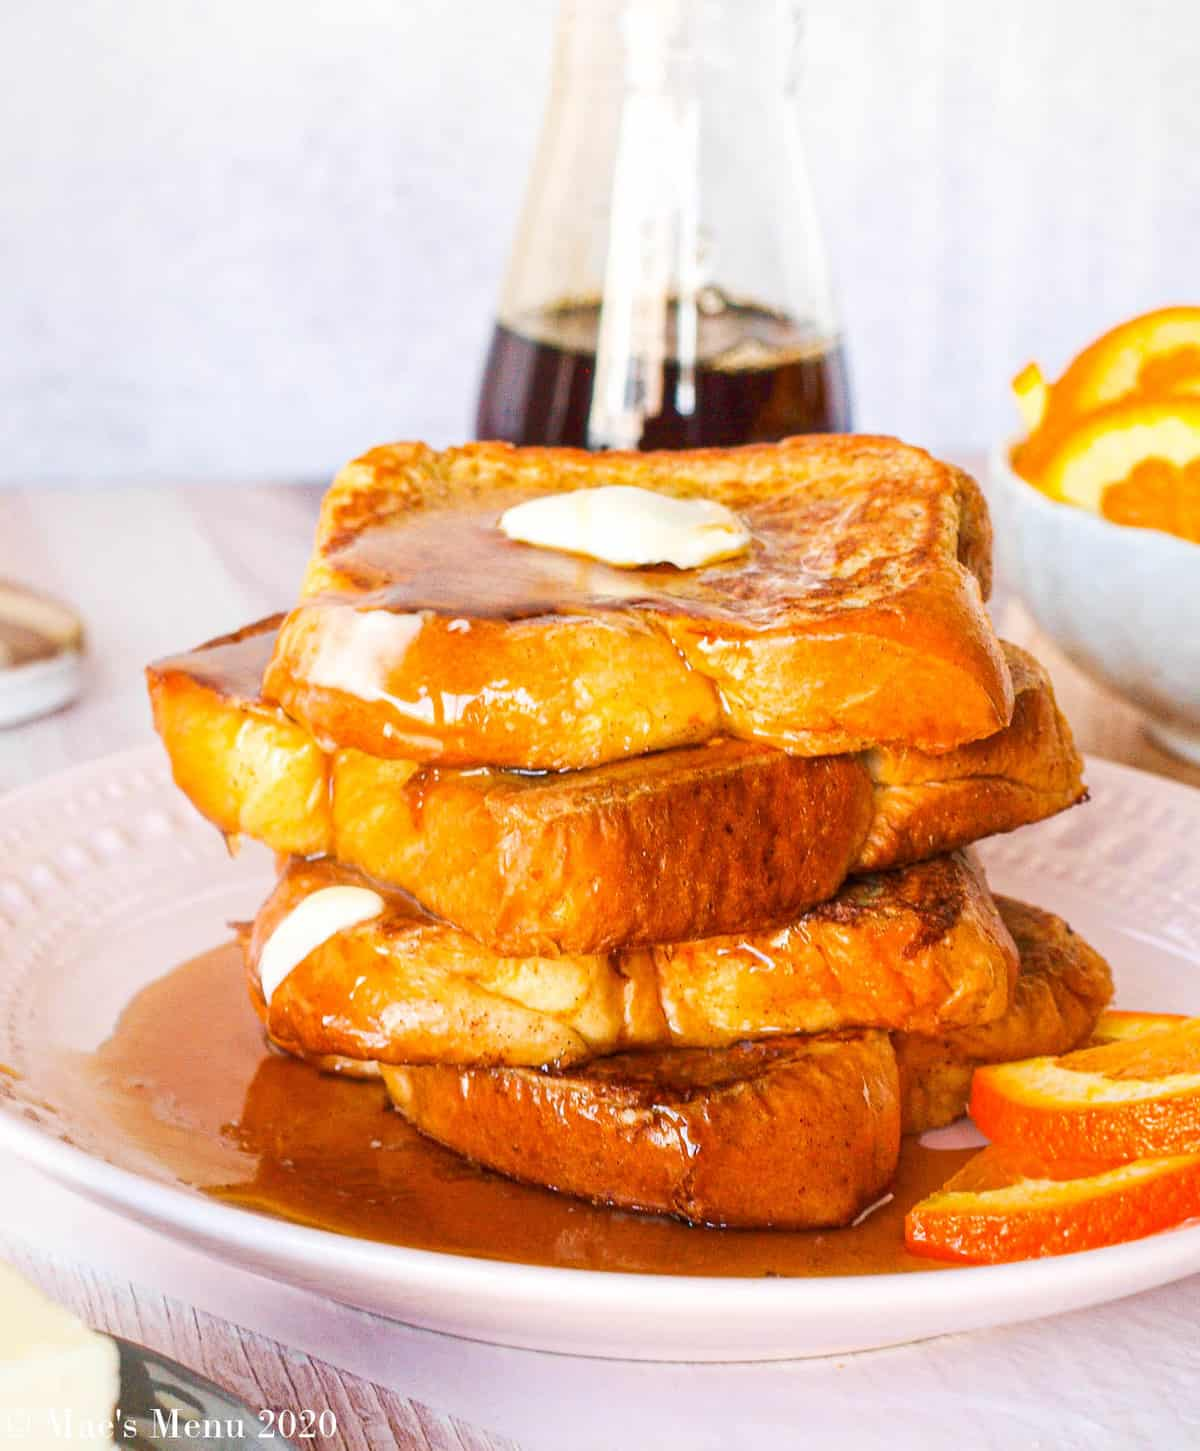 An up-close shot of a large stack of brioche french toast with butter and maple syrup on top